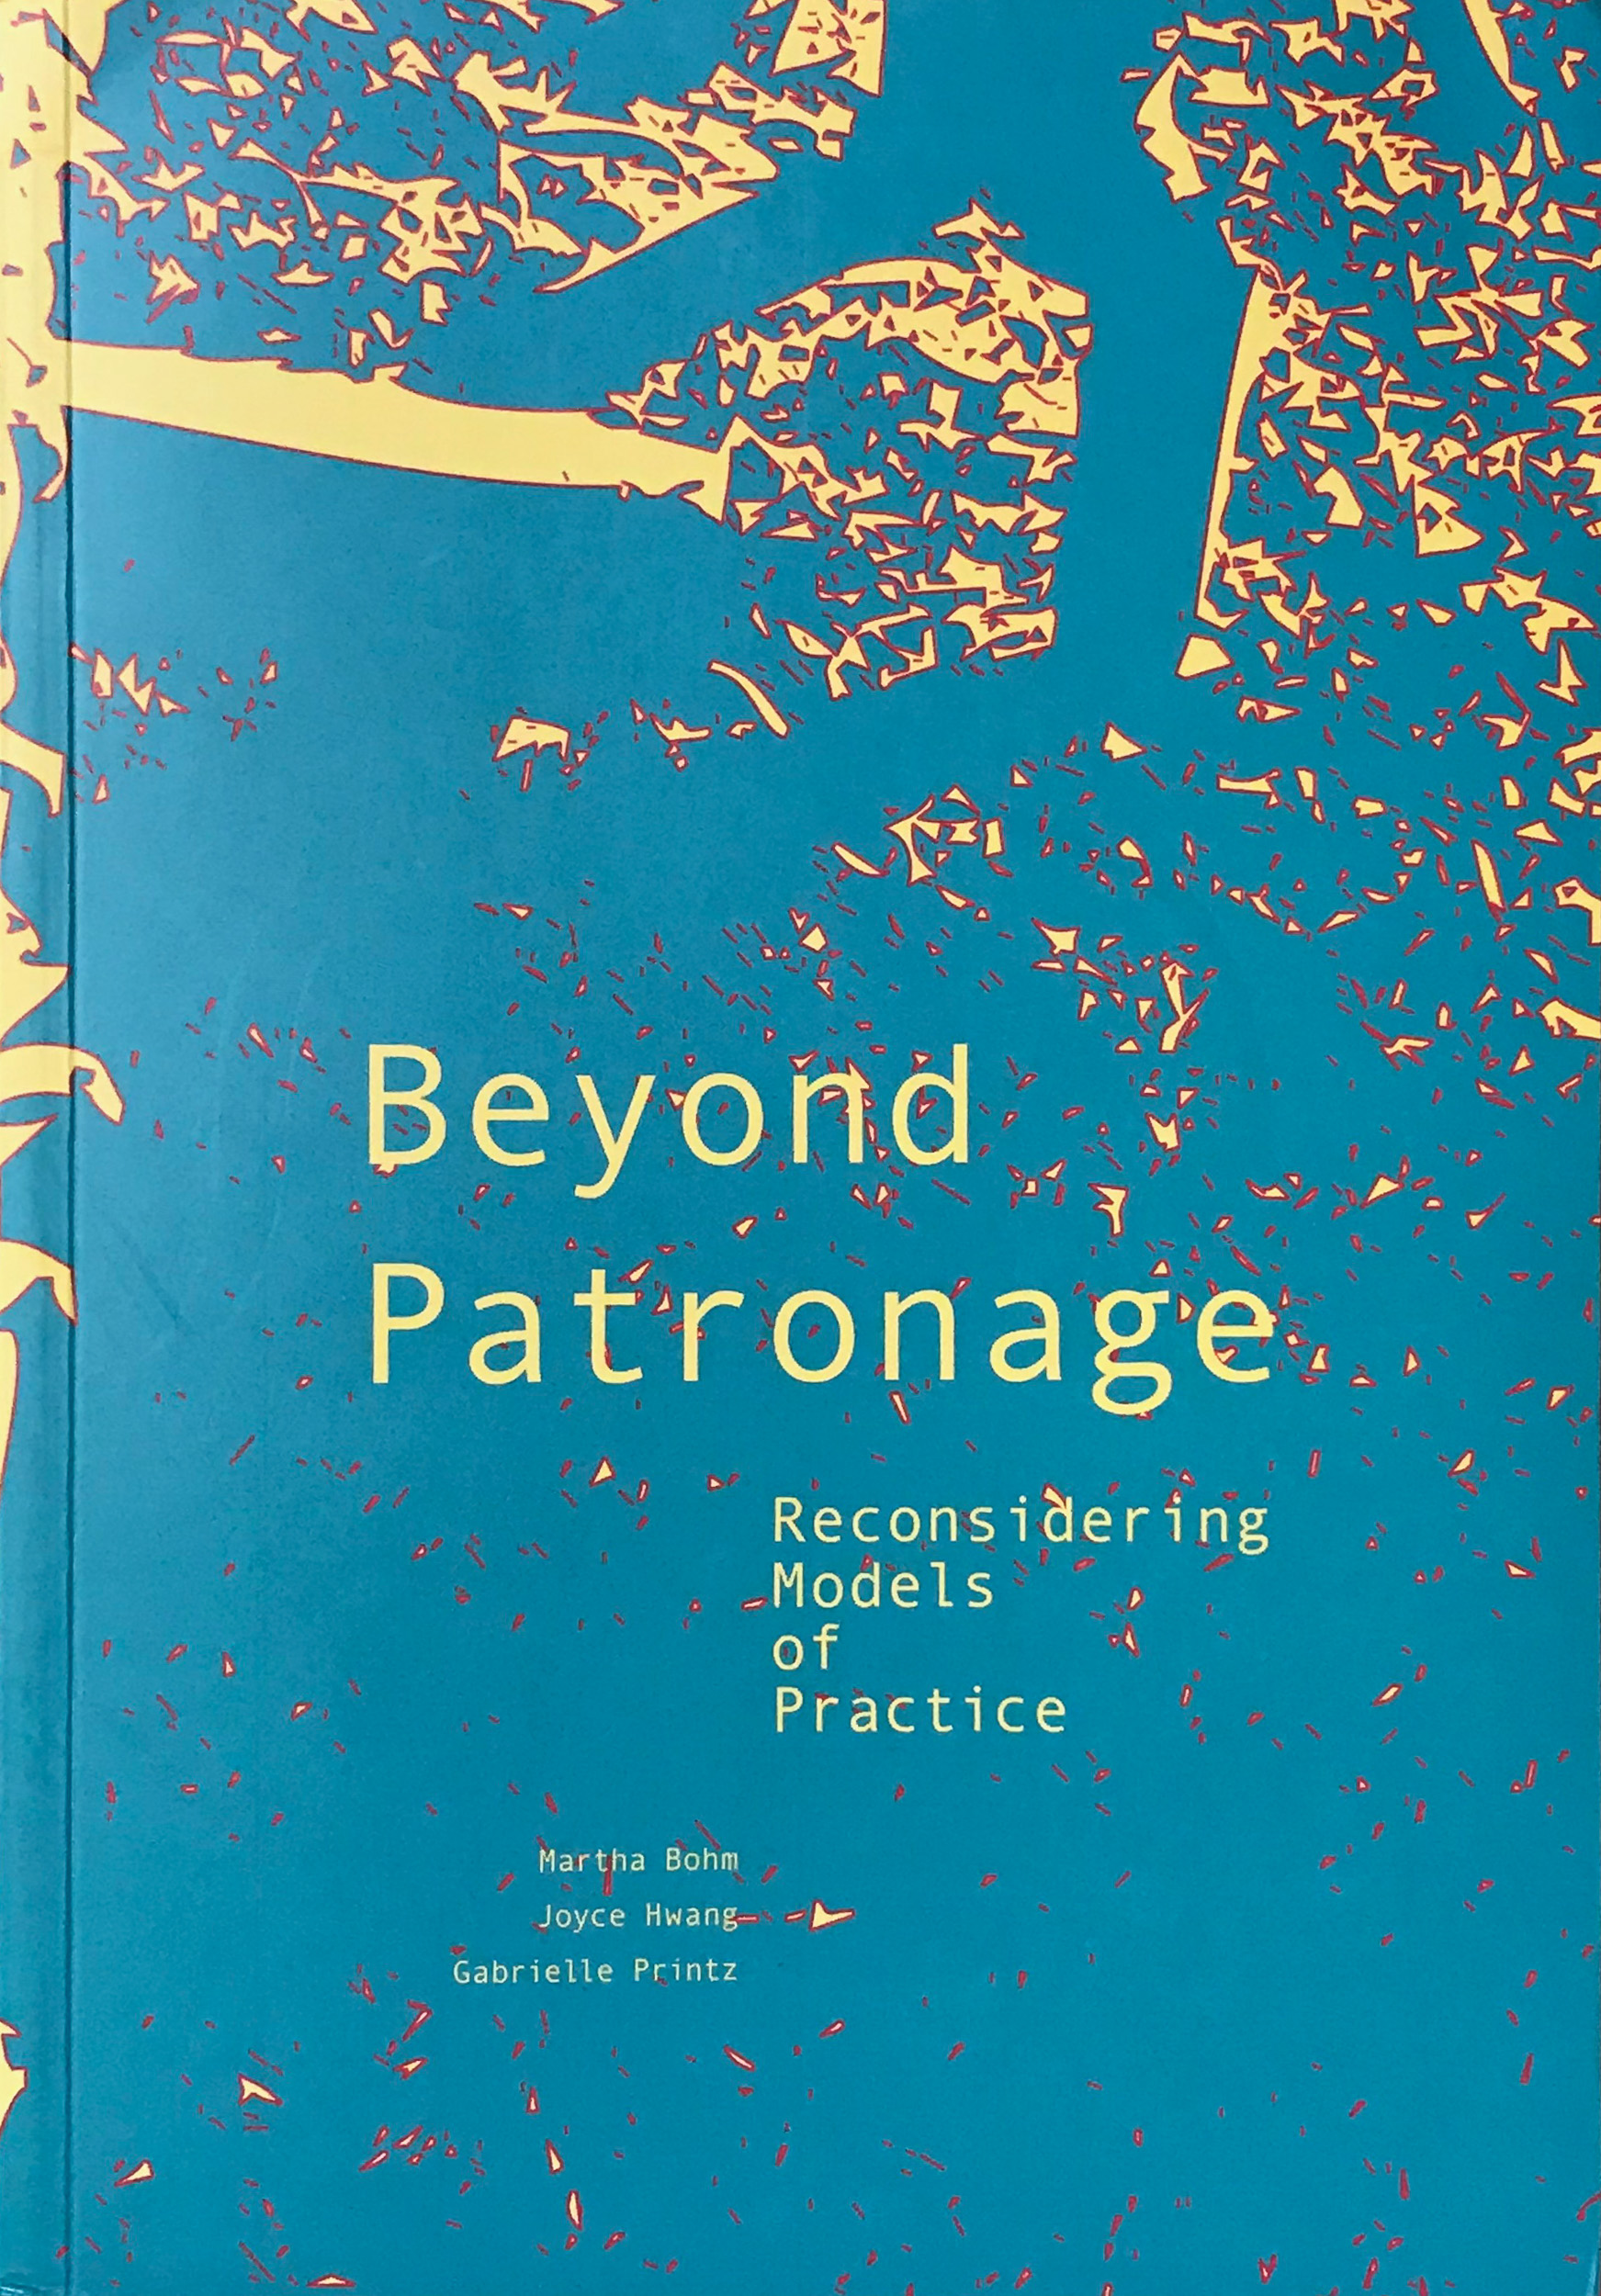 180201 Beyond Patronage.jpg